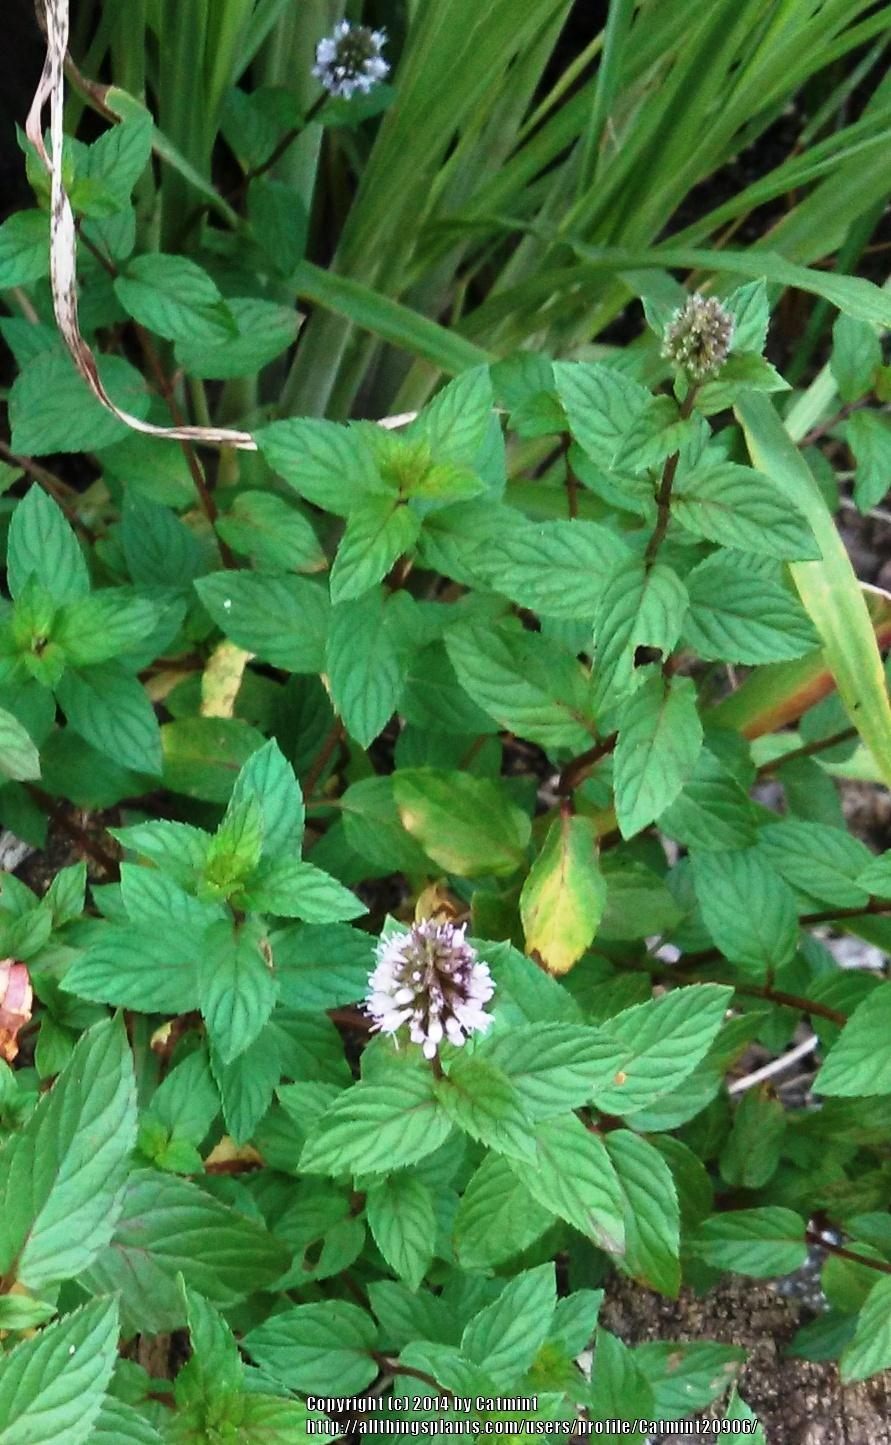 Photo of Chocolate Mint (Mentha x piperita 'Chocolate') uploaded by Catmint20906